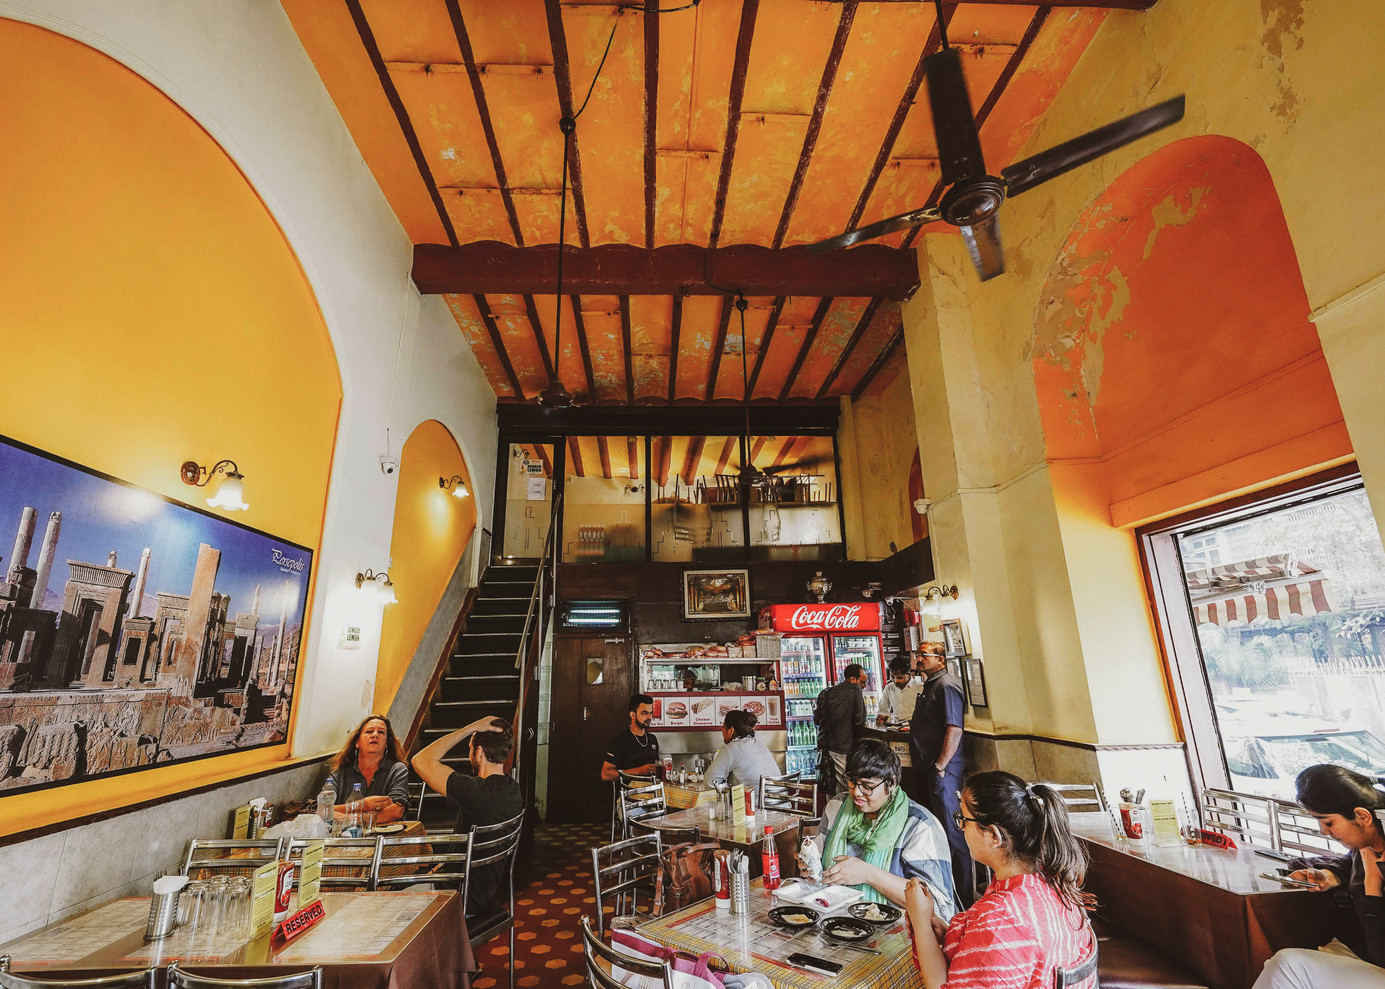 Cafe Piccadilly, with its large French windows and colonial decor, opposite Electric House on Colaba Causeway. The cafe has been in operation since 1957. Customers are greeted by a grand panorama of the ruins of Persepolis, the ancient capital of the Achaemenid Empire located in the Fars province of Iran. The French windows of the cafe offer a view of the street life, which the customers can enjoy along with their favourite shawarmas.